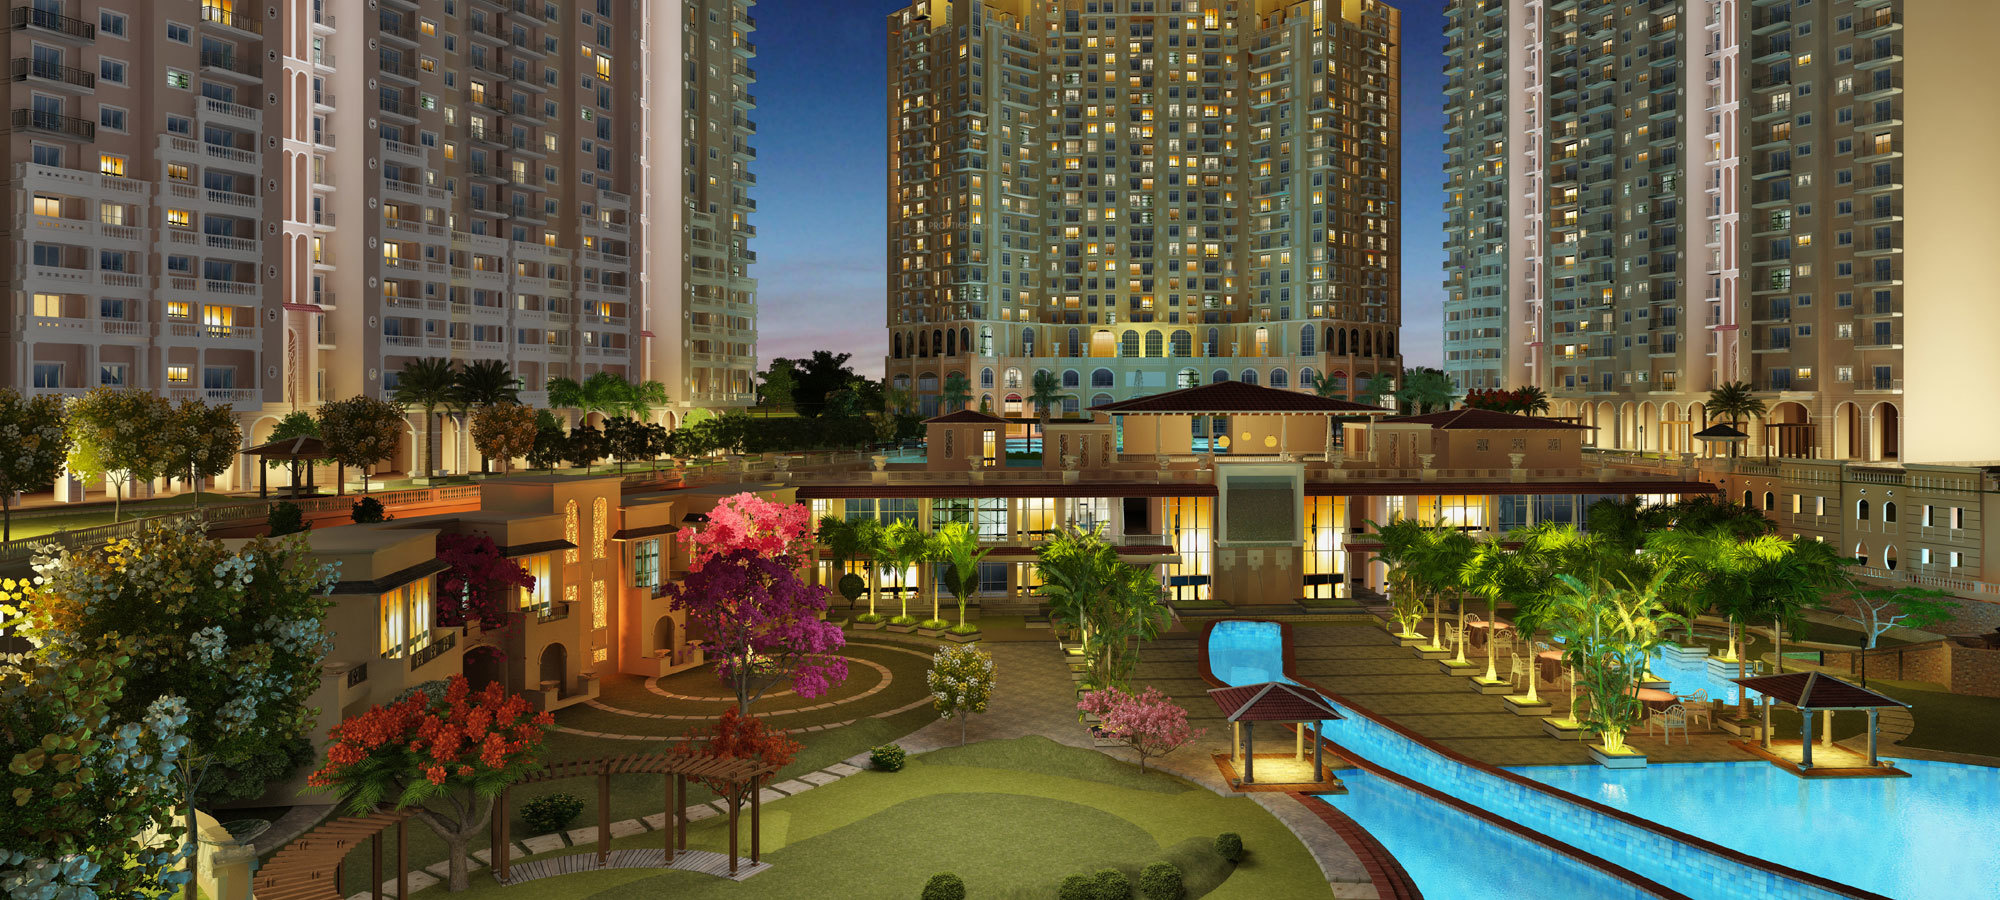 1529 Sq Ft 3 Bhk 2t Apartment For Sale In Dlf New Town